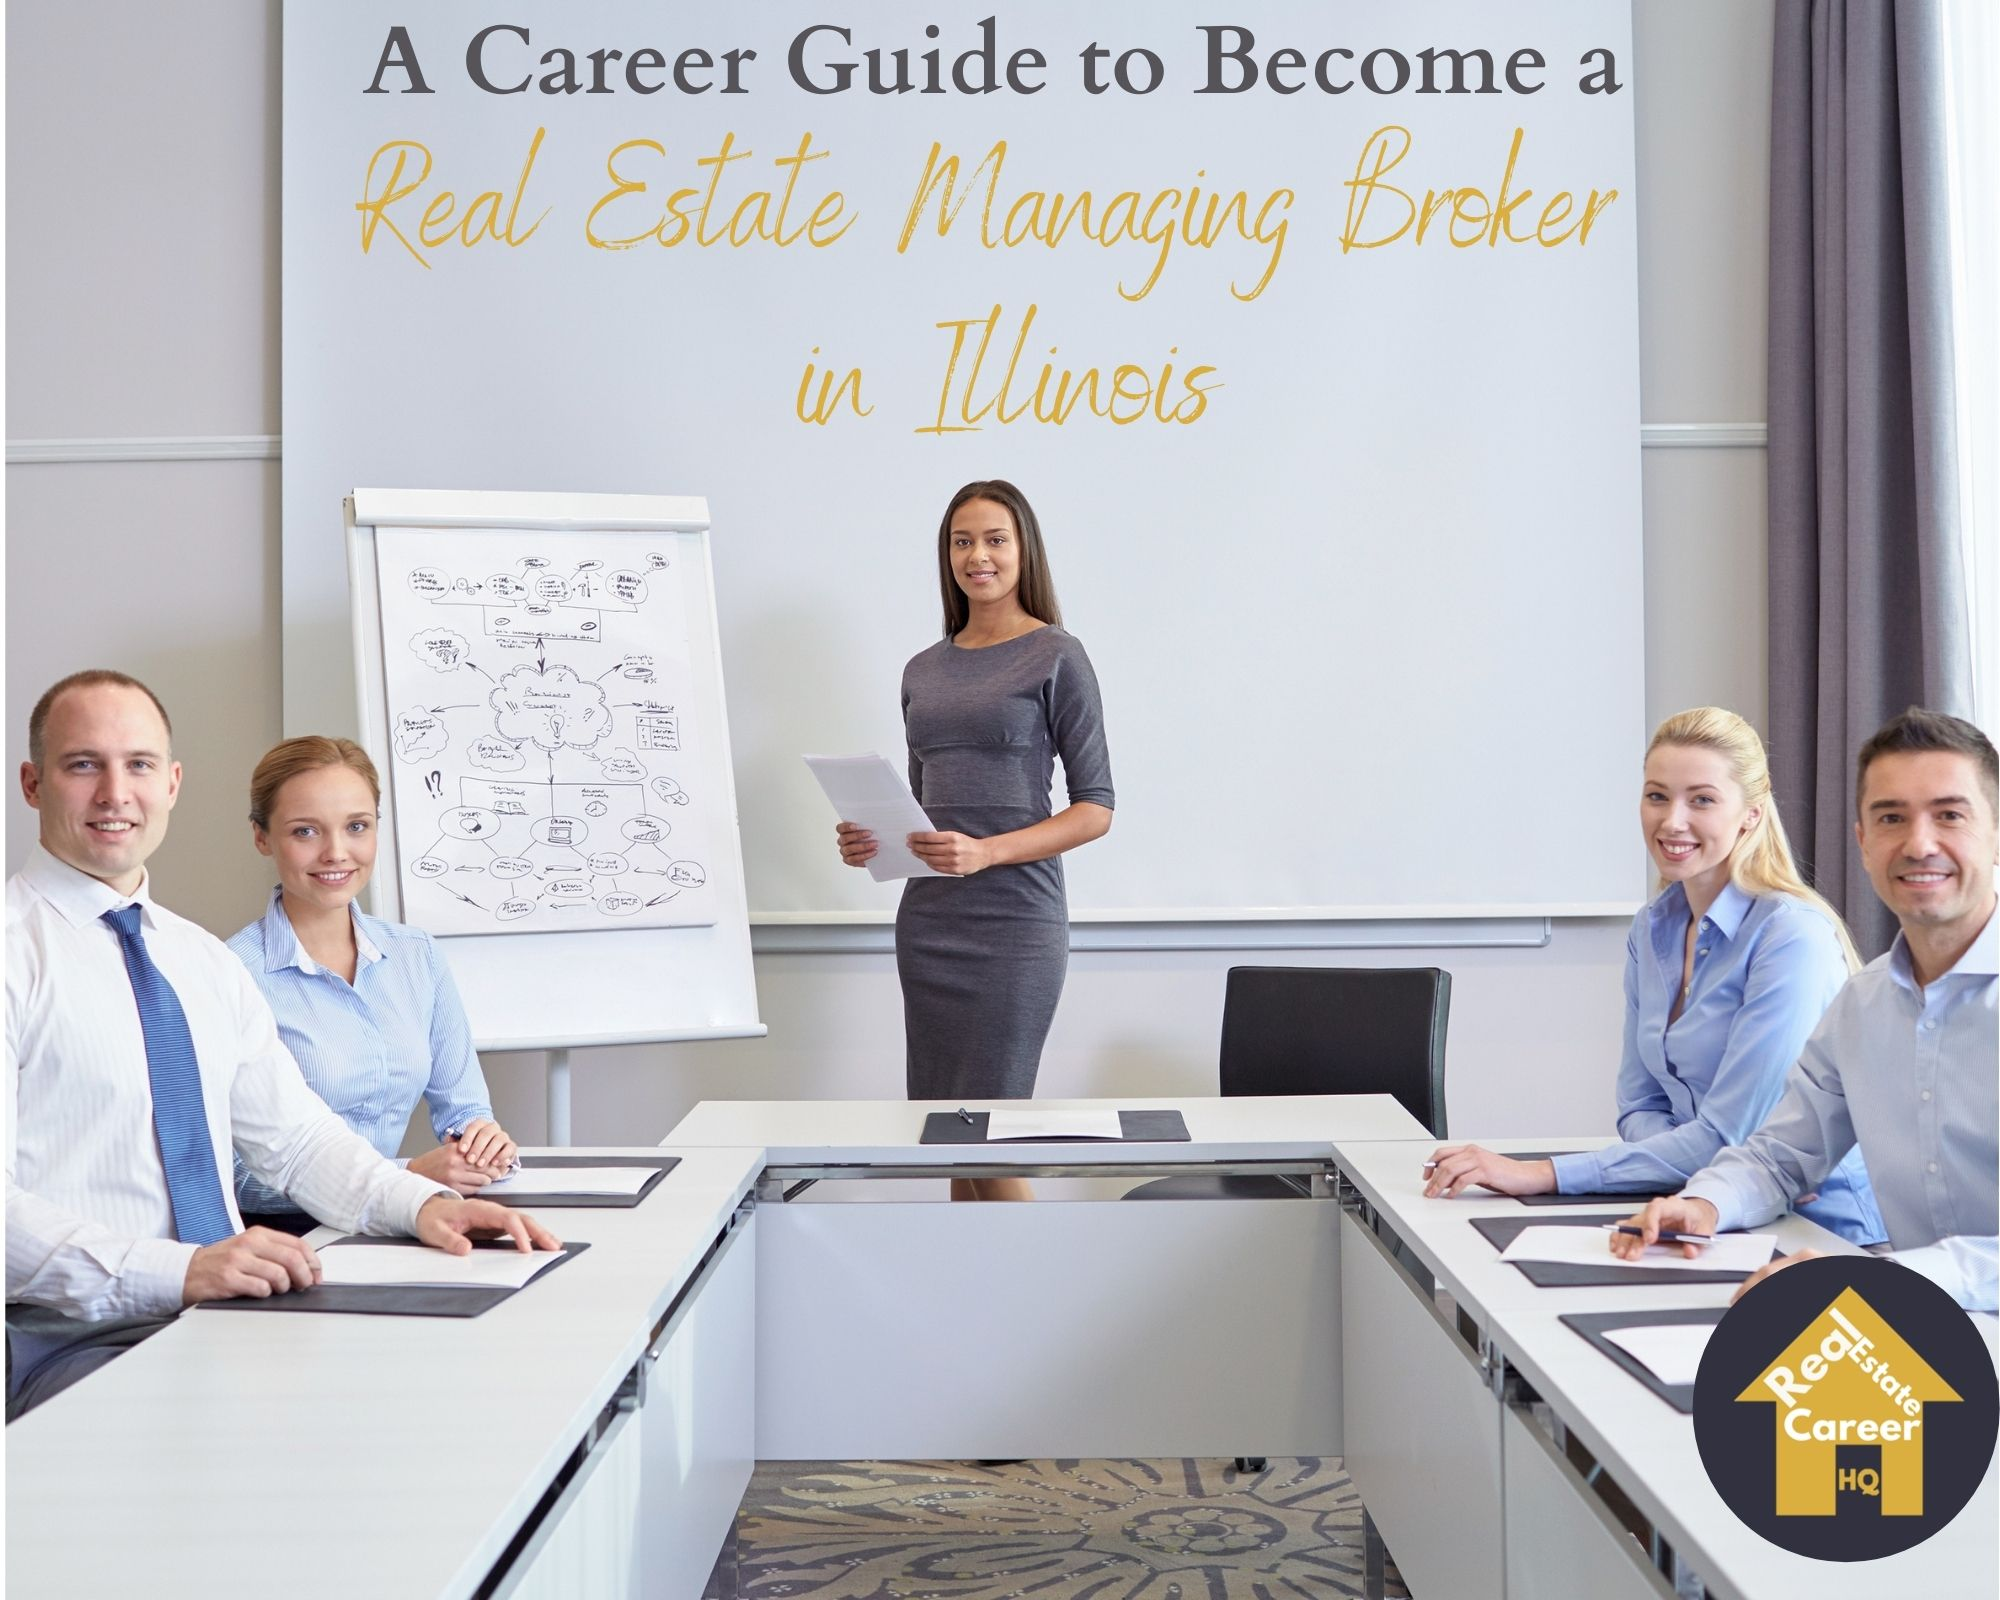 How to Become a Real Estate Managing Broker in Illinois?